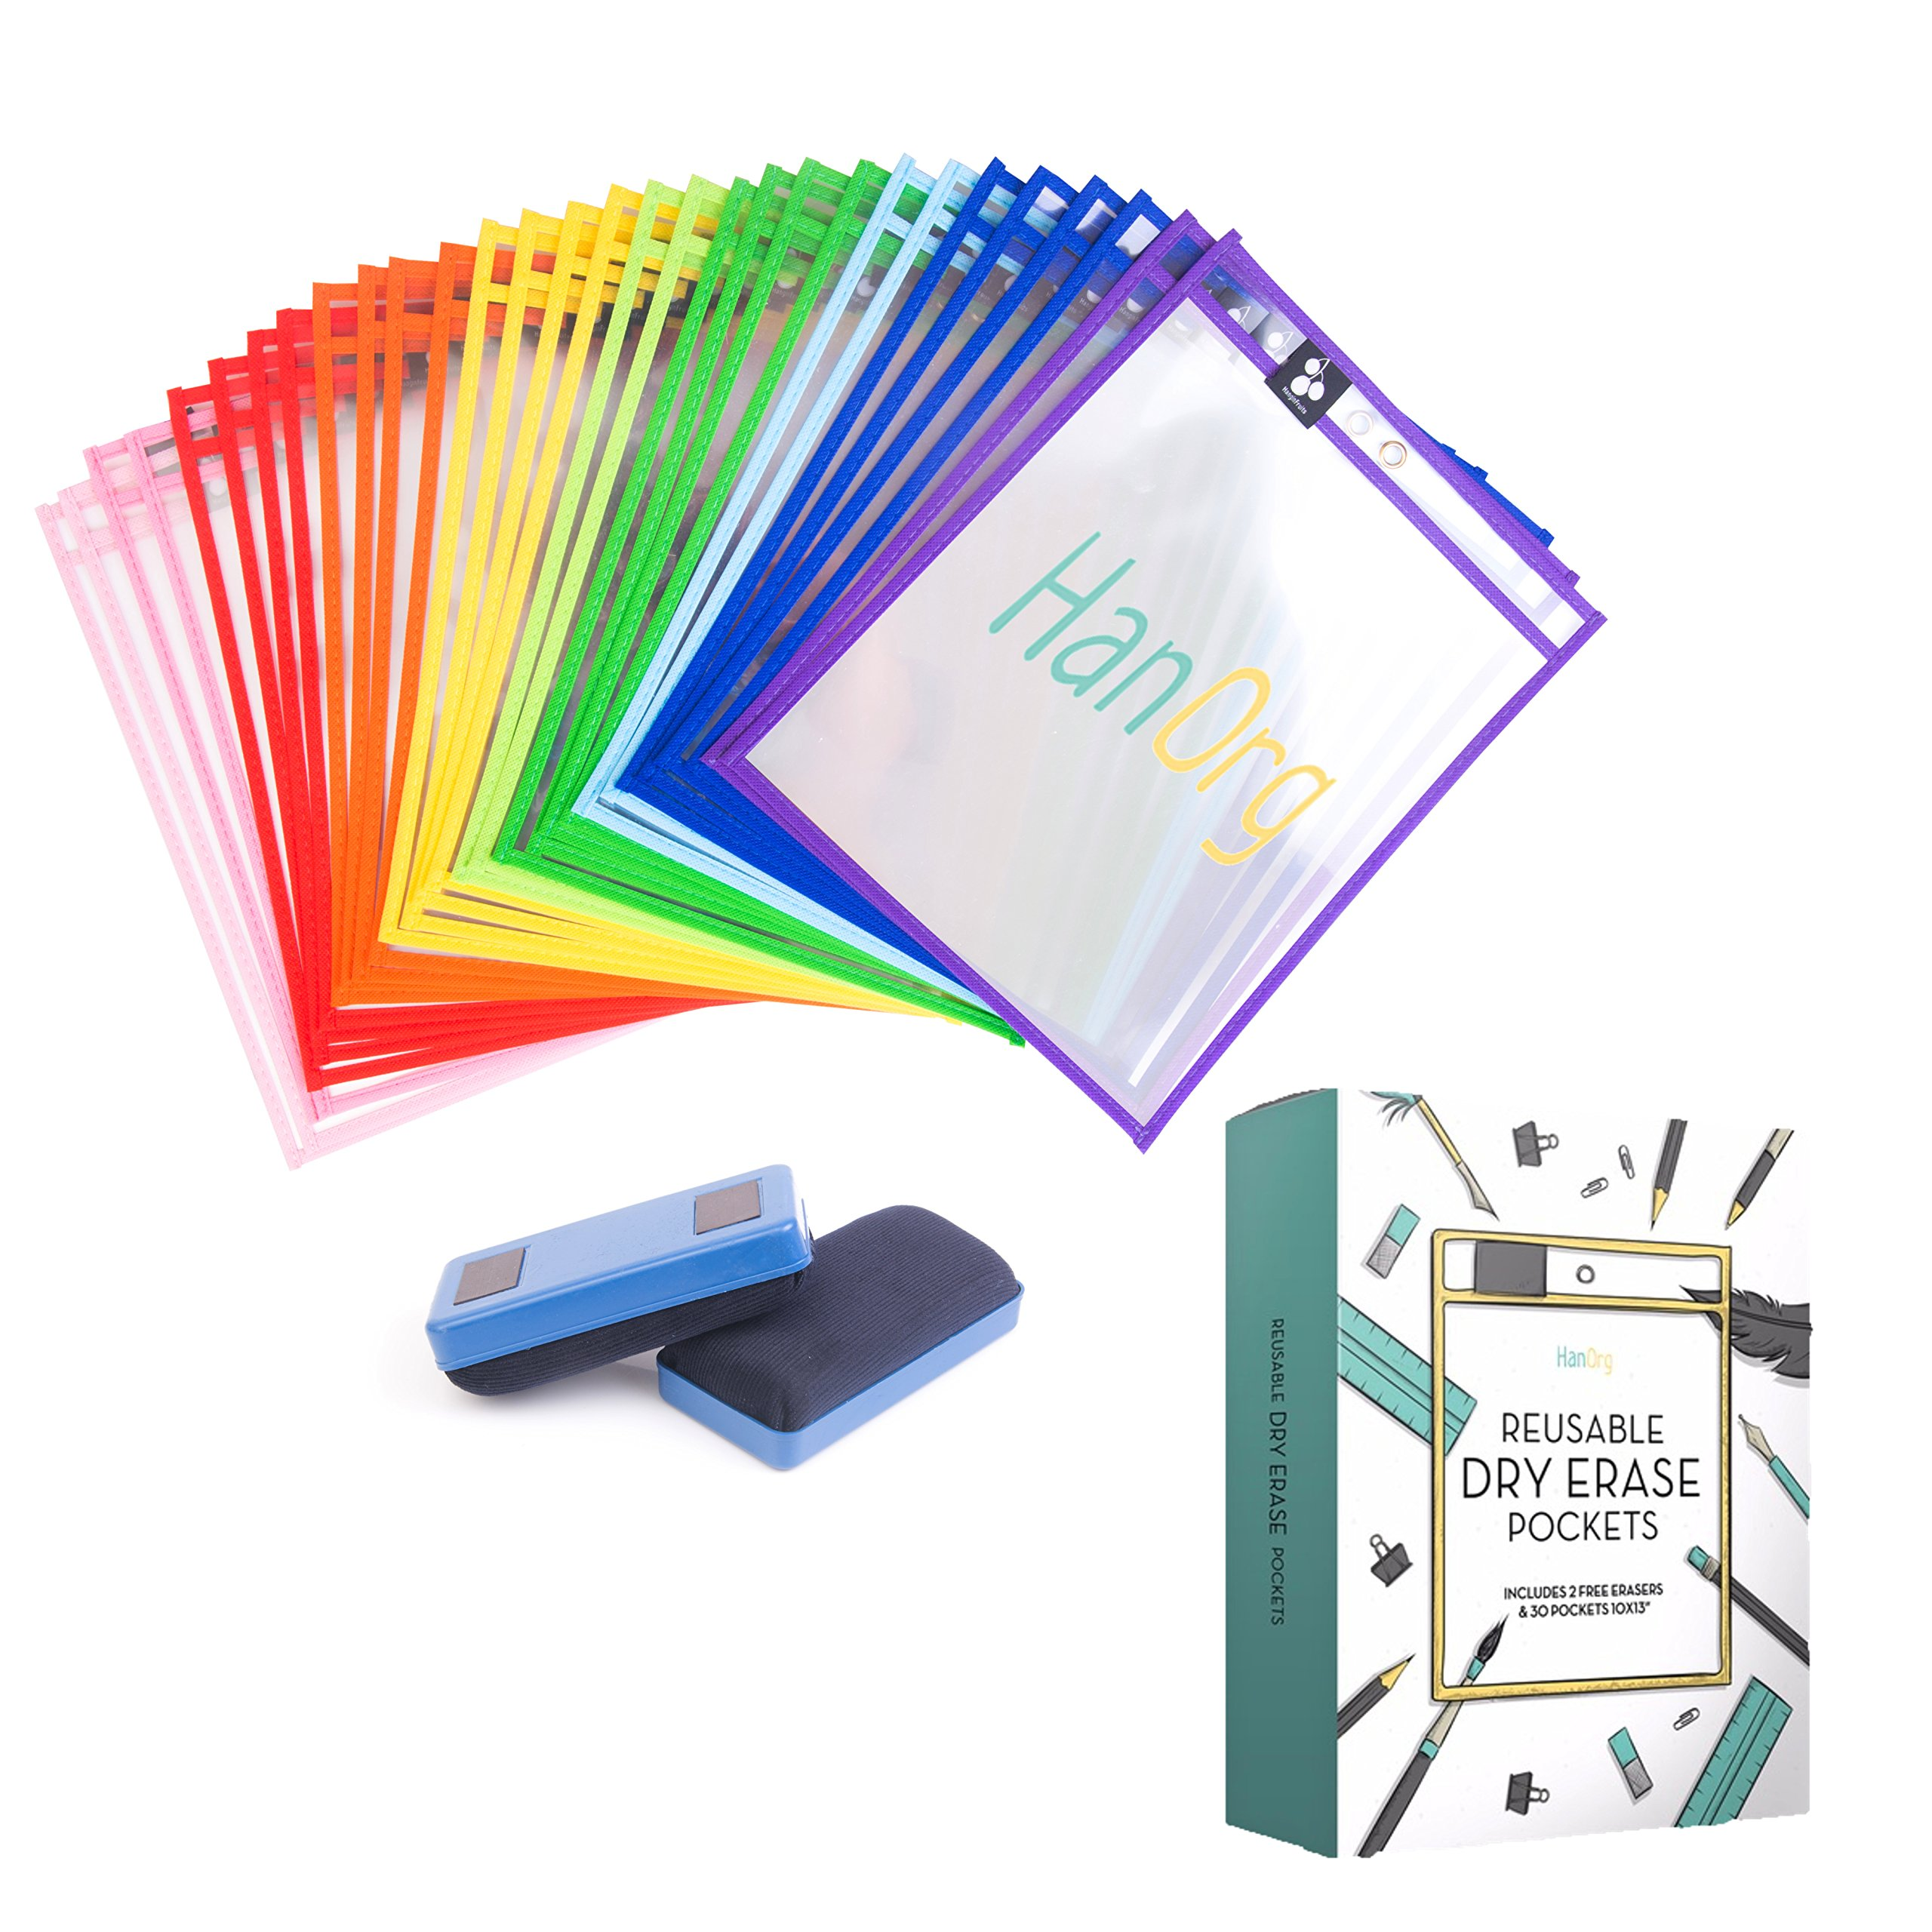 Heavy Duty Dry Erase Pockets - 10'' x 13'' Oversized Reusable Multicolored Sleeves - Many Different Colors - Top Quality Supplies for Your Office, School, Classroom, Children & More (Pack of 30)